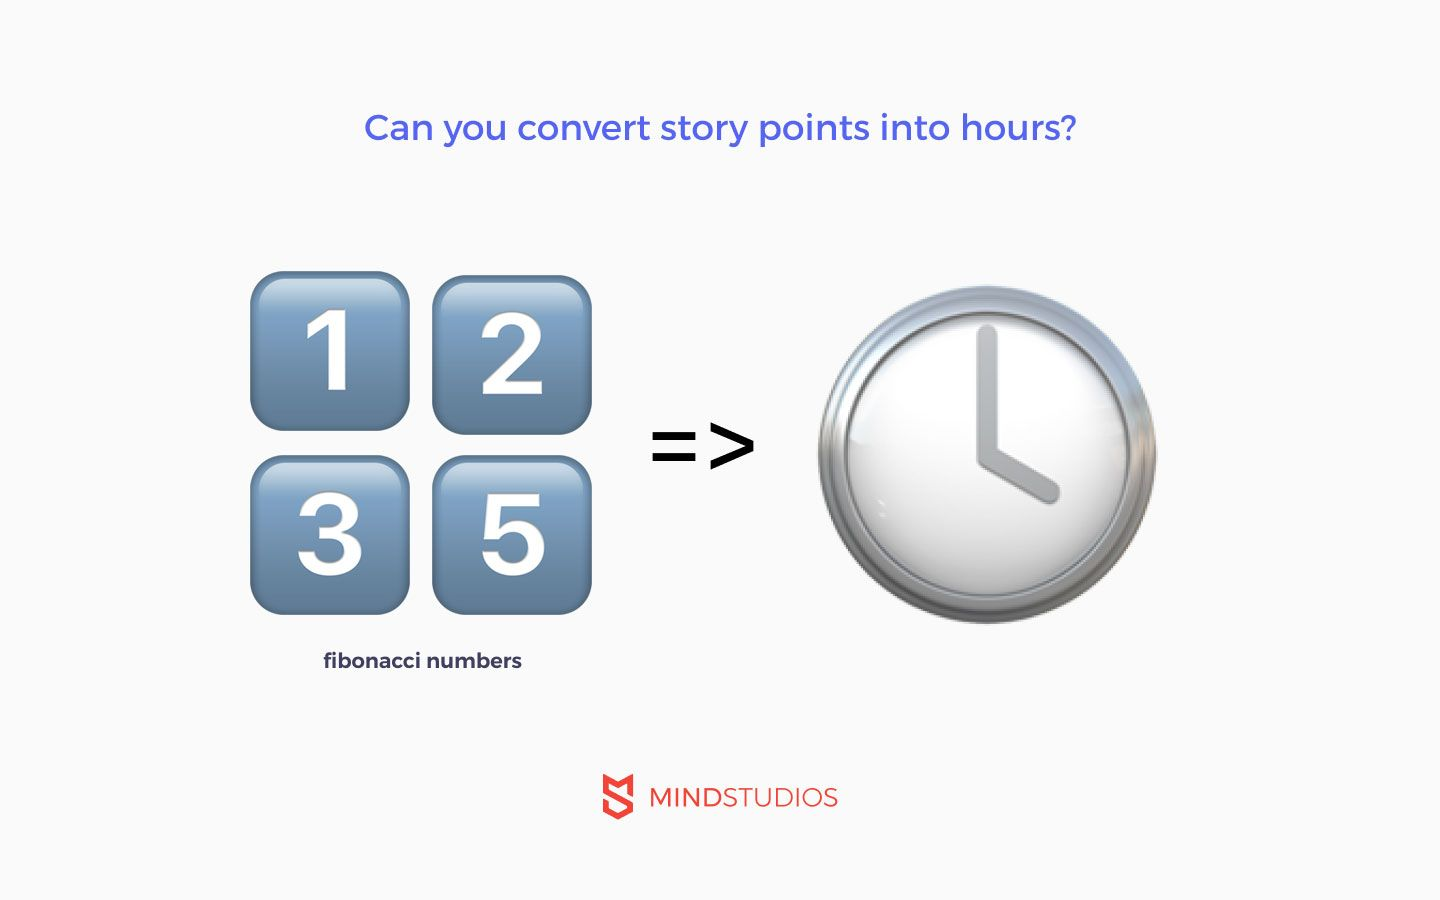 convert story points into hours